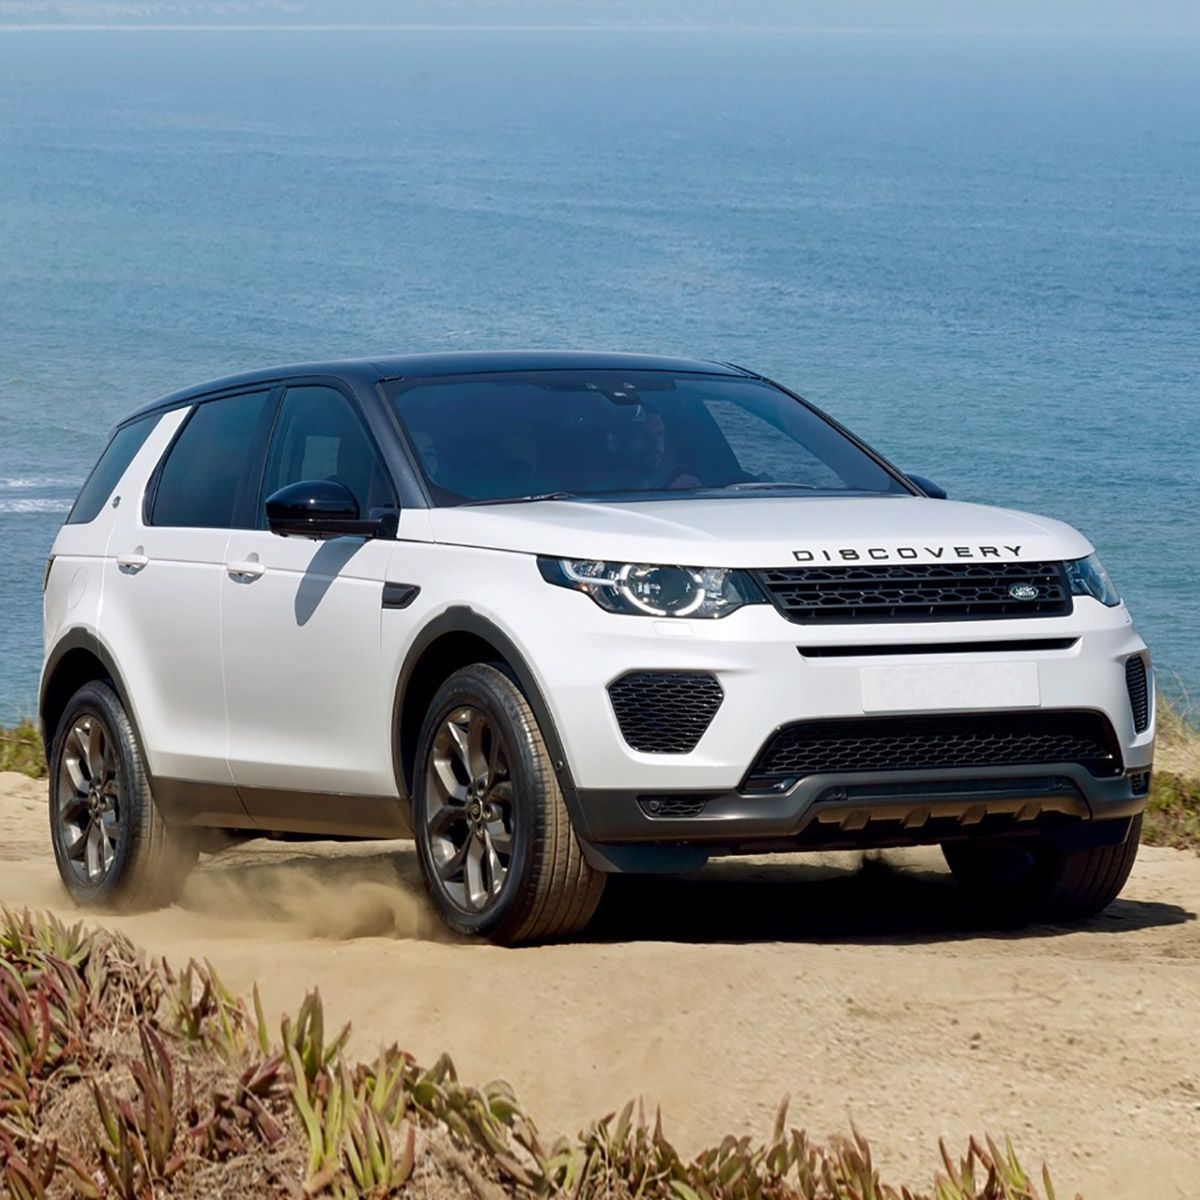 2019 Discovery Sport Landmark Edition Gets Launched in